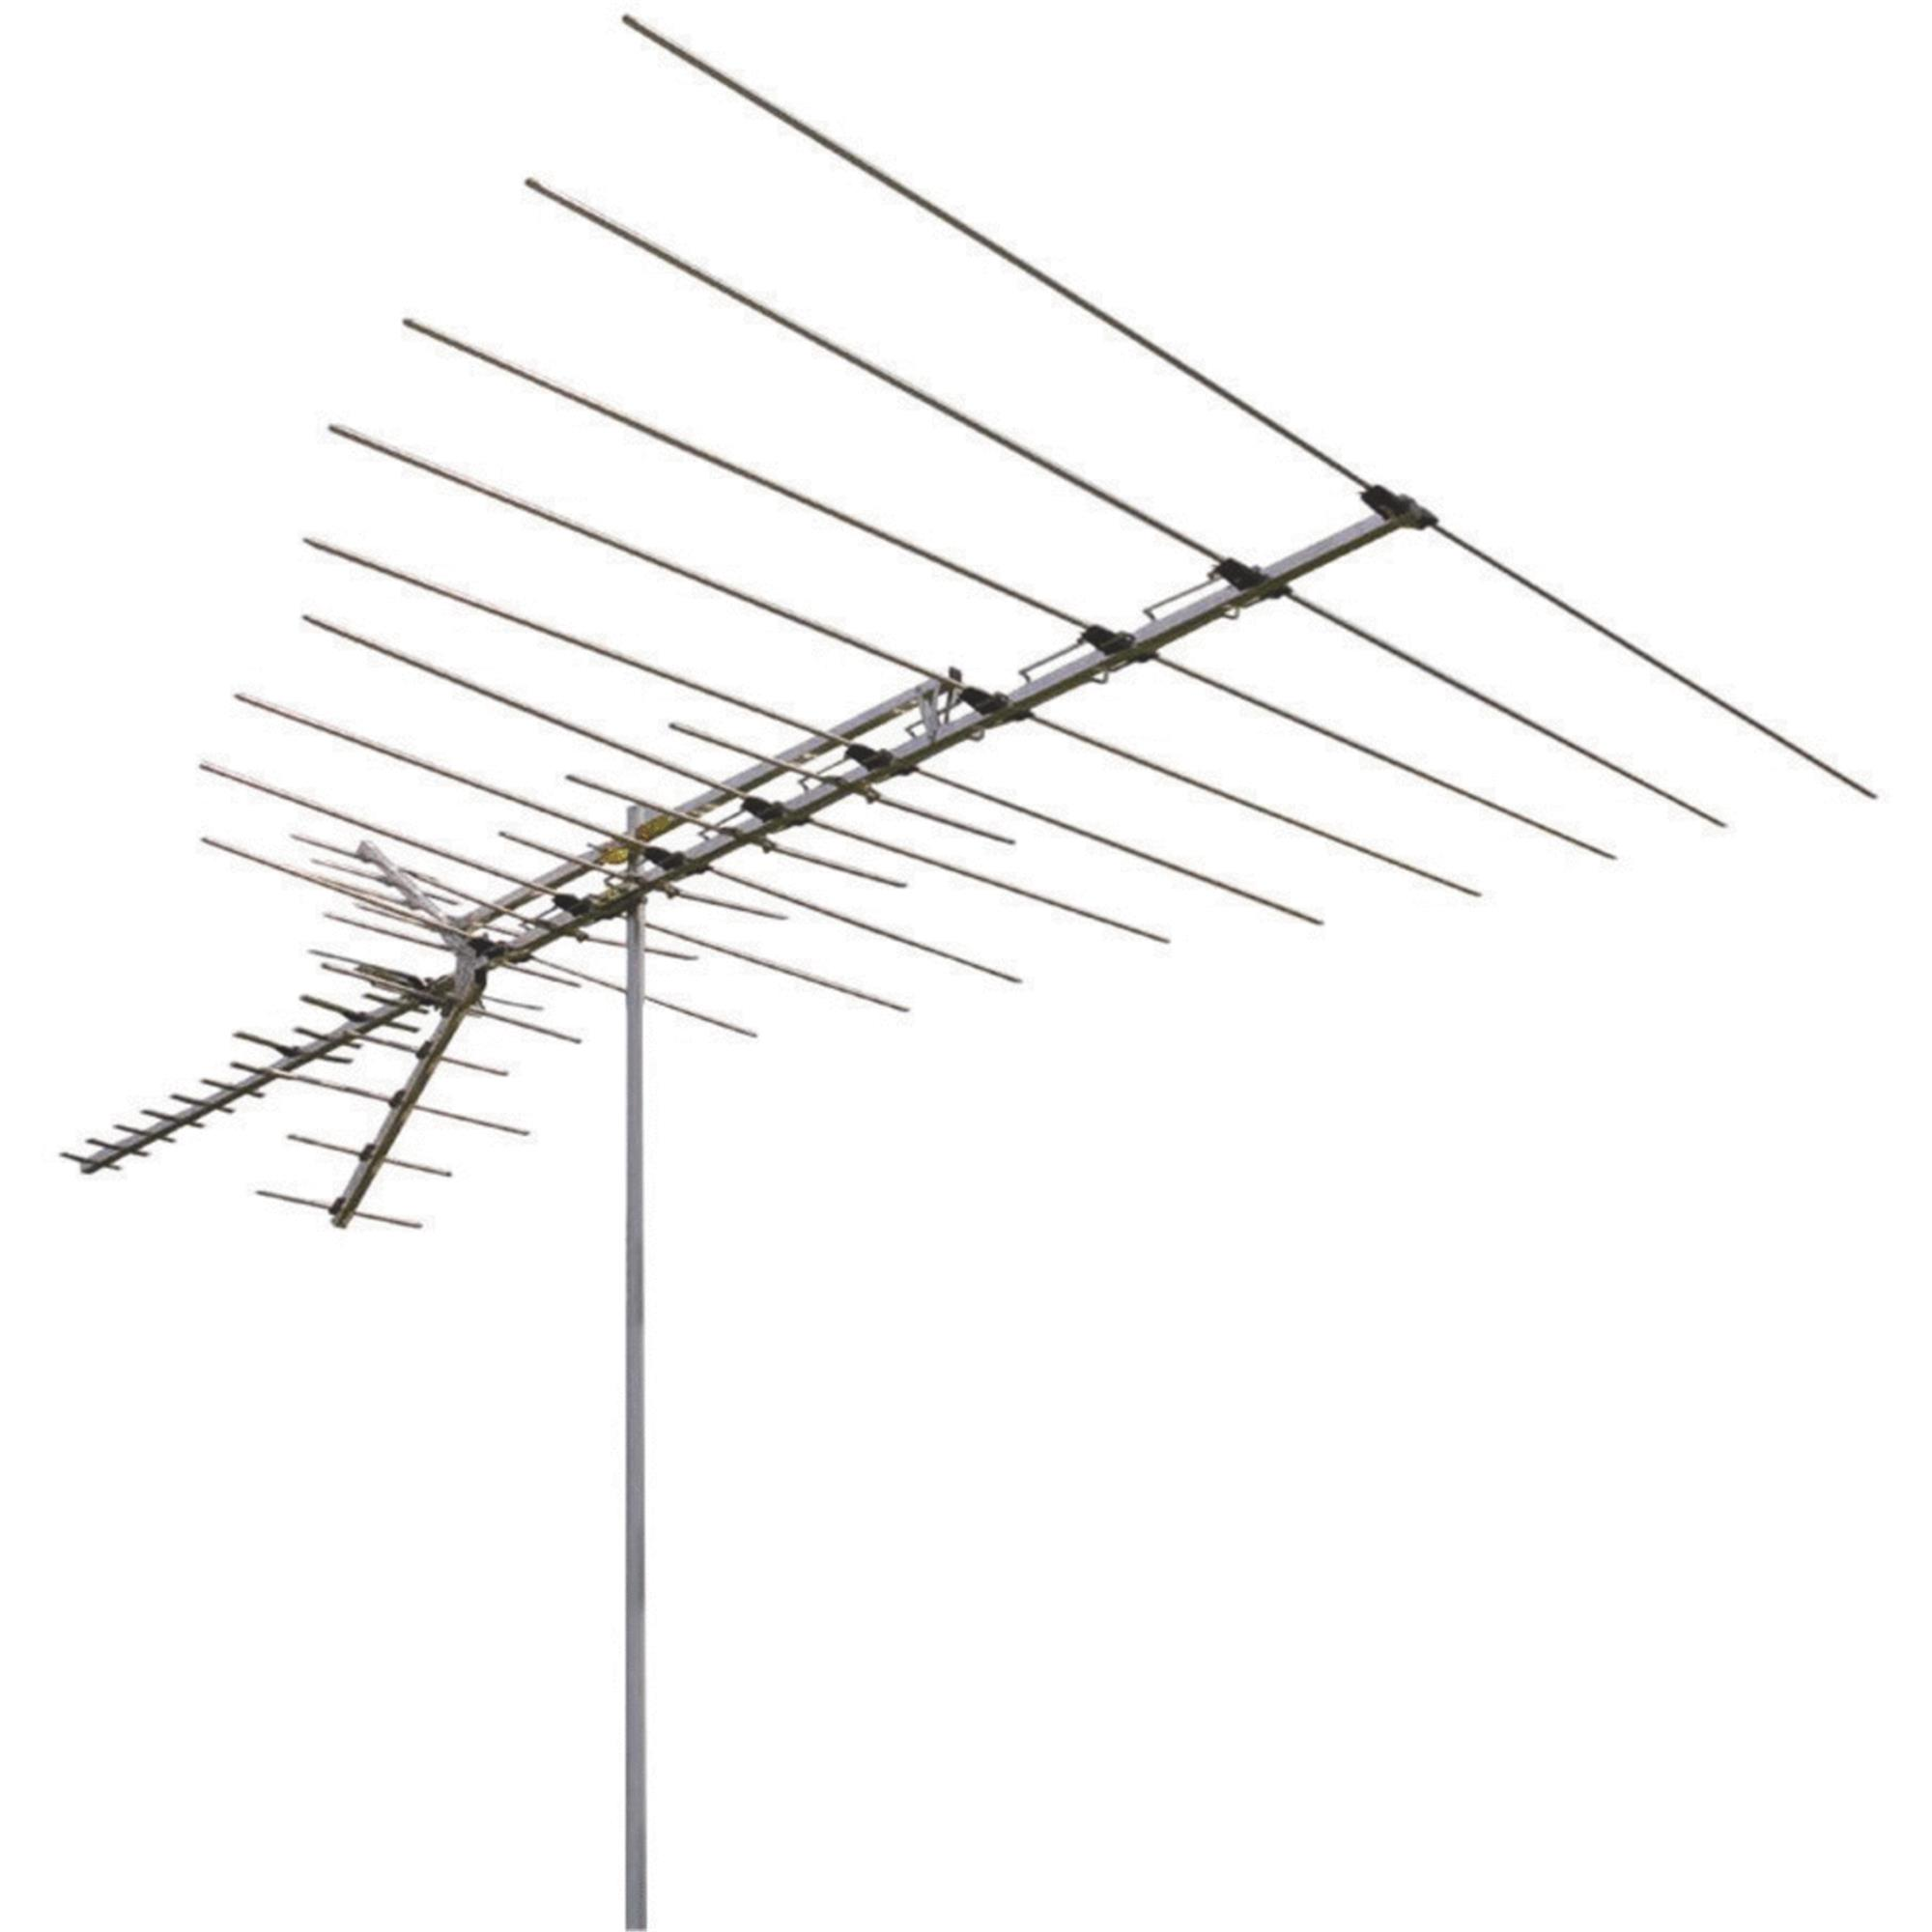 RCA Outdoor HD Antenna